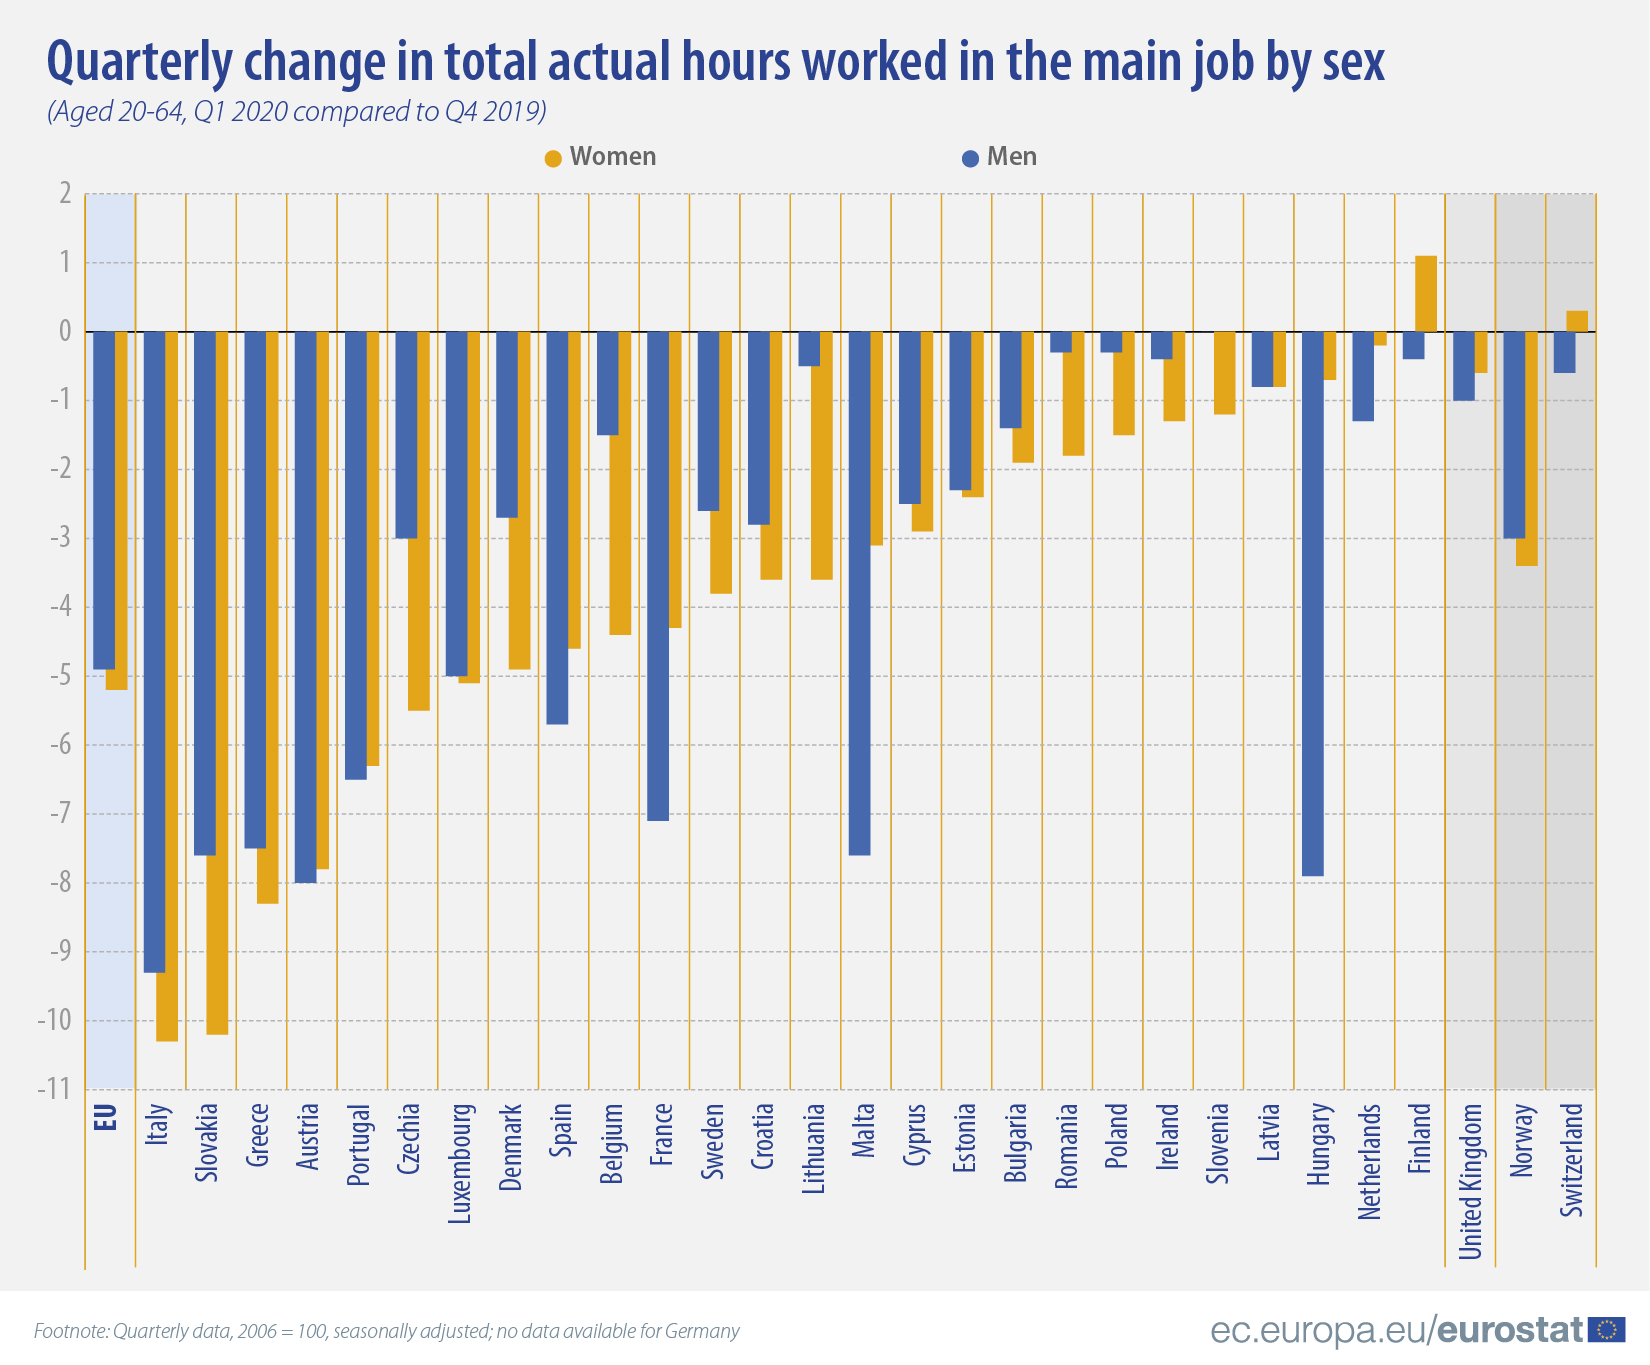 Quarterly change in total actual hours worked in the main job by sex